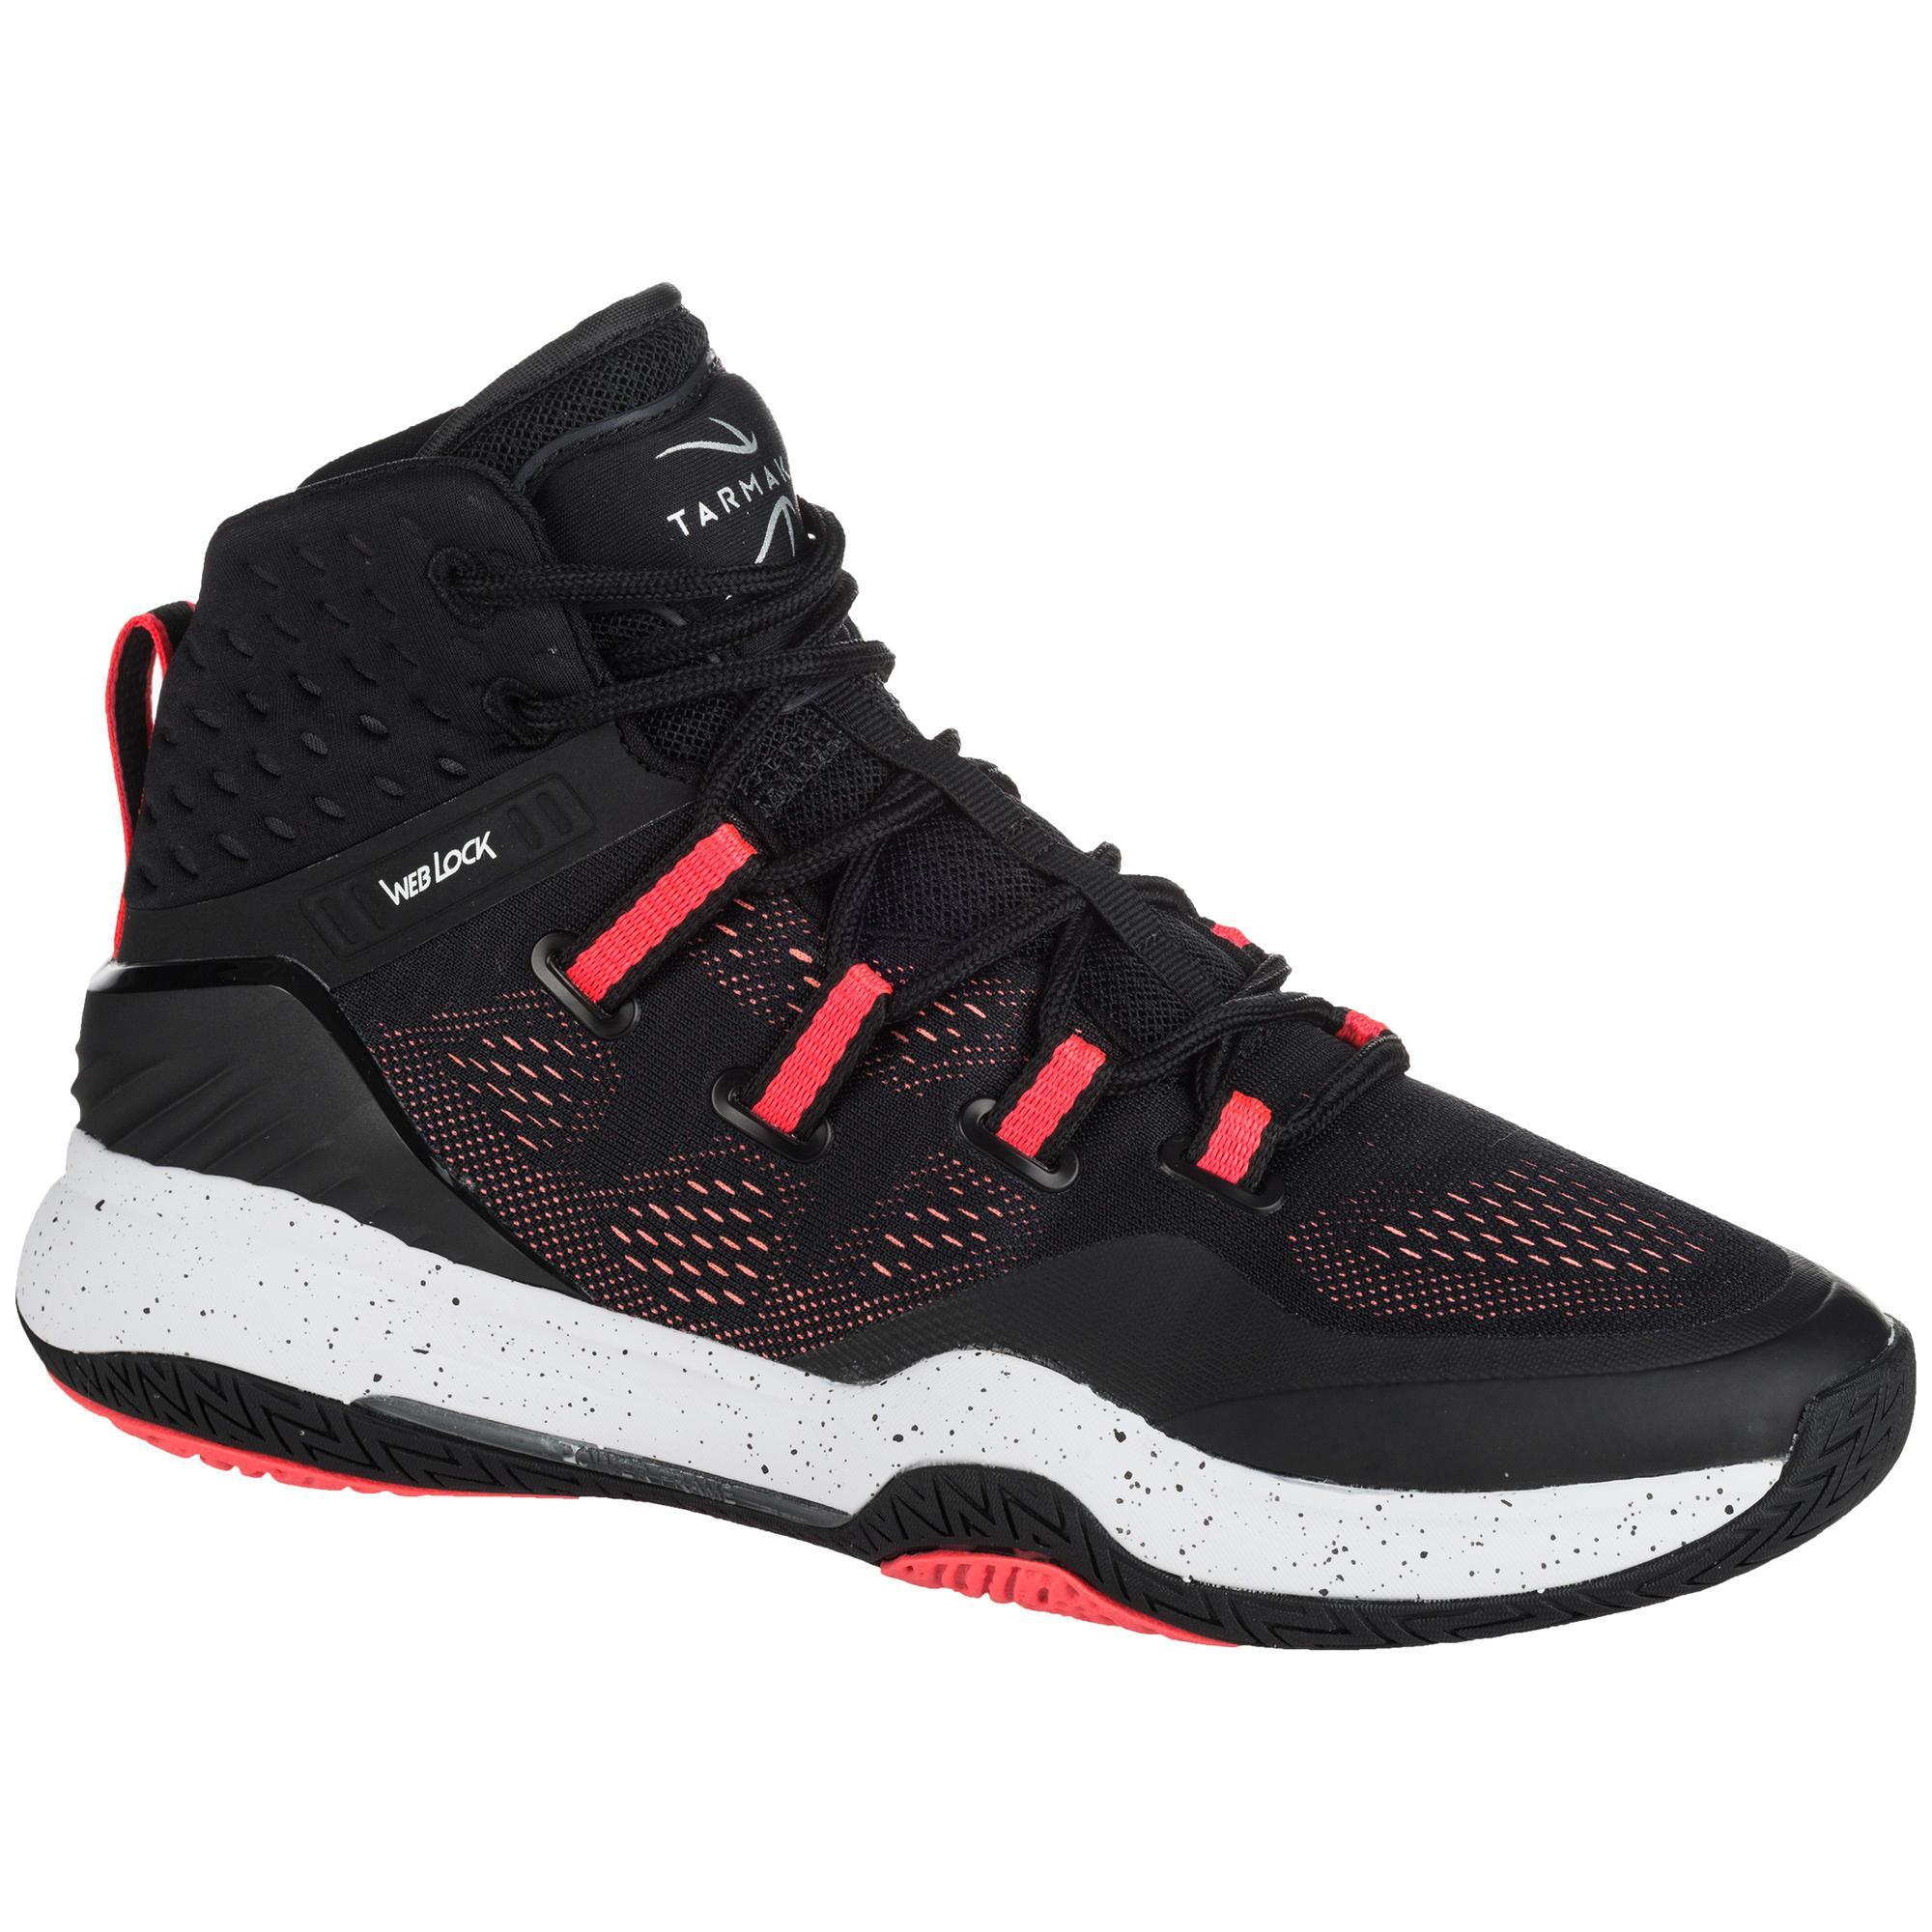 excellent quality popular brand beauty Chaussures de basketball femme | Chaussures de basket femme ...